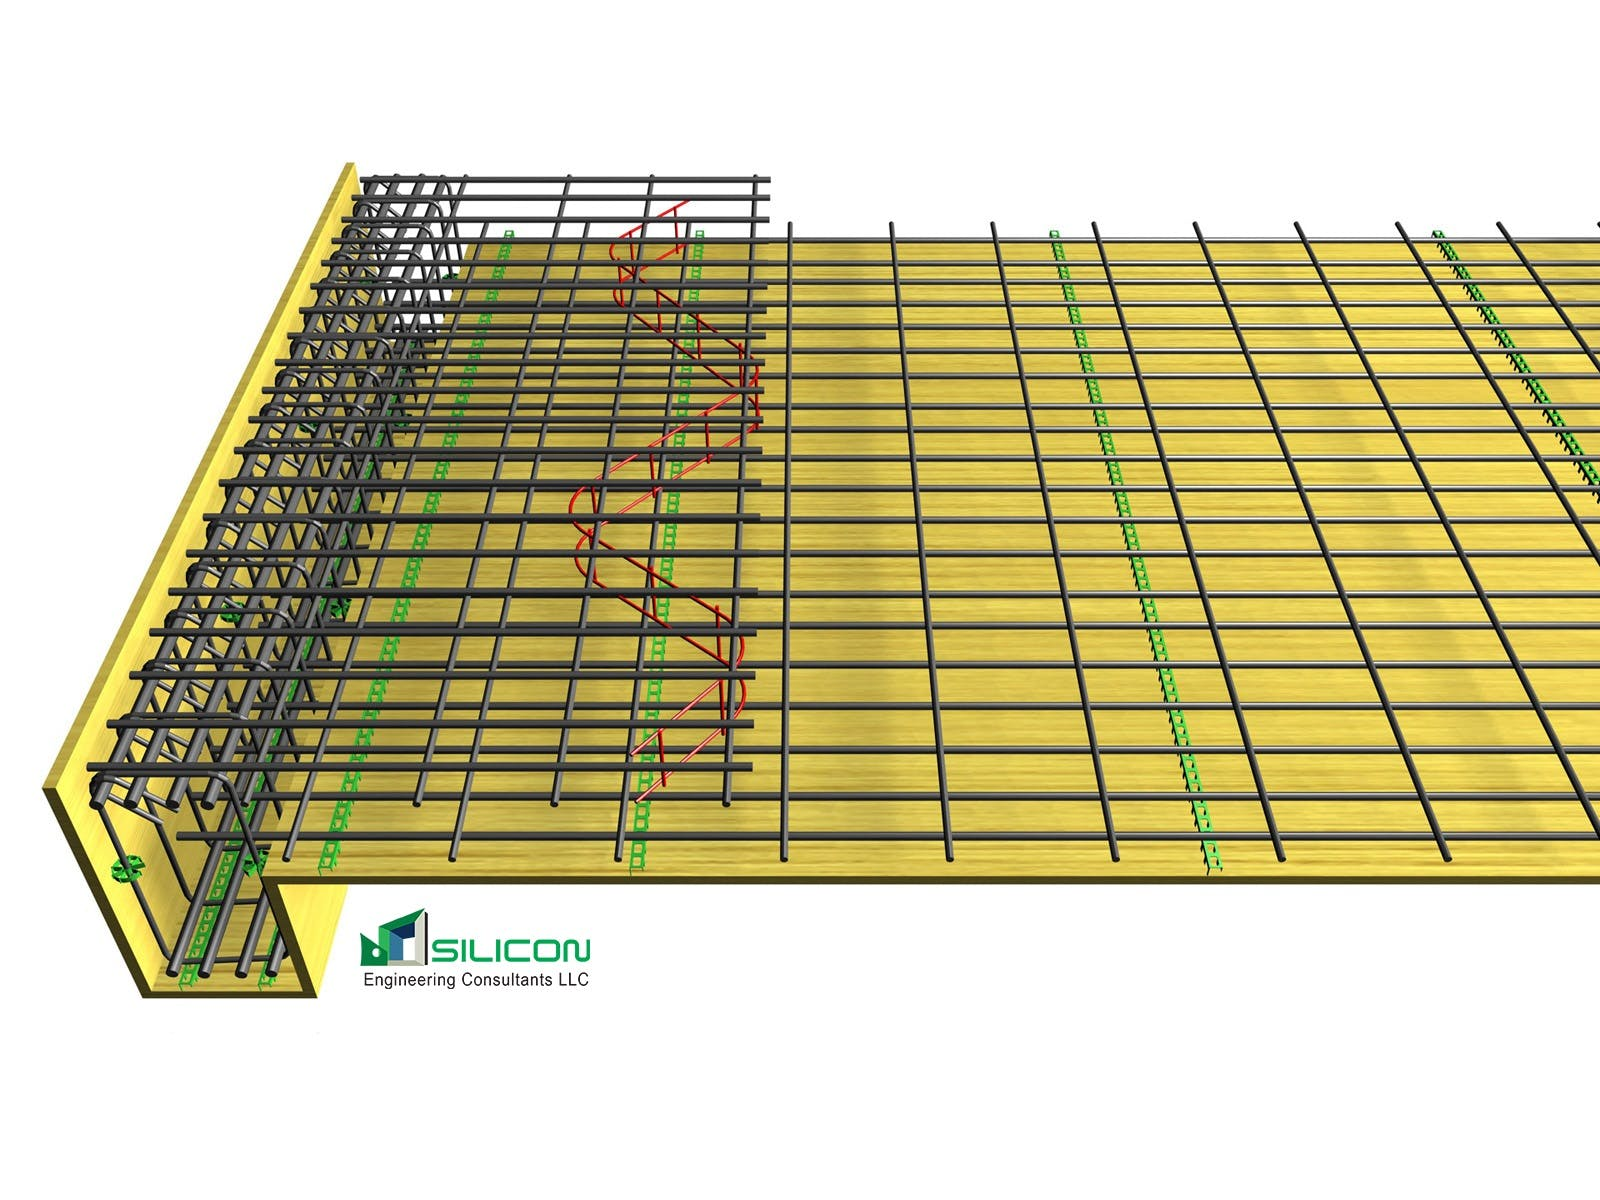 Rebar Detailing School : Tekla steel rebar detailing and fabrication services